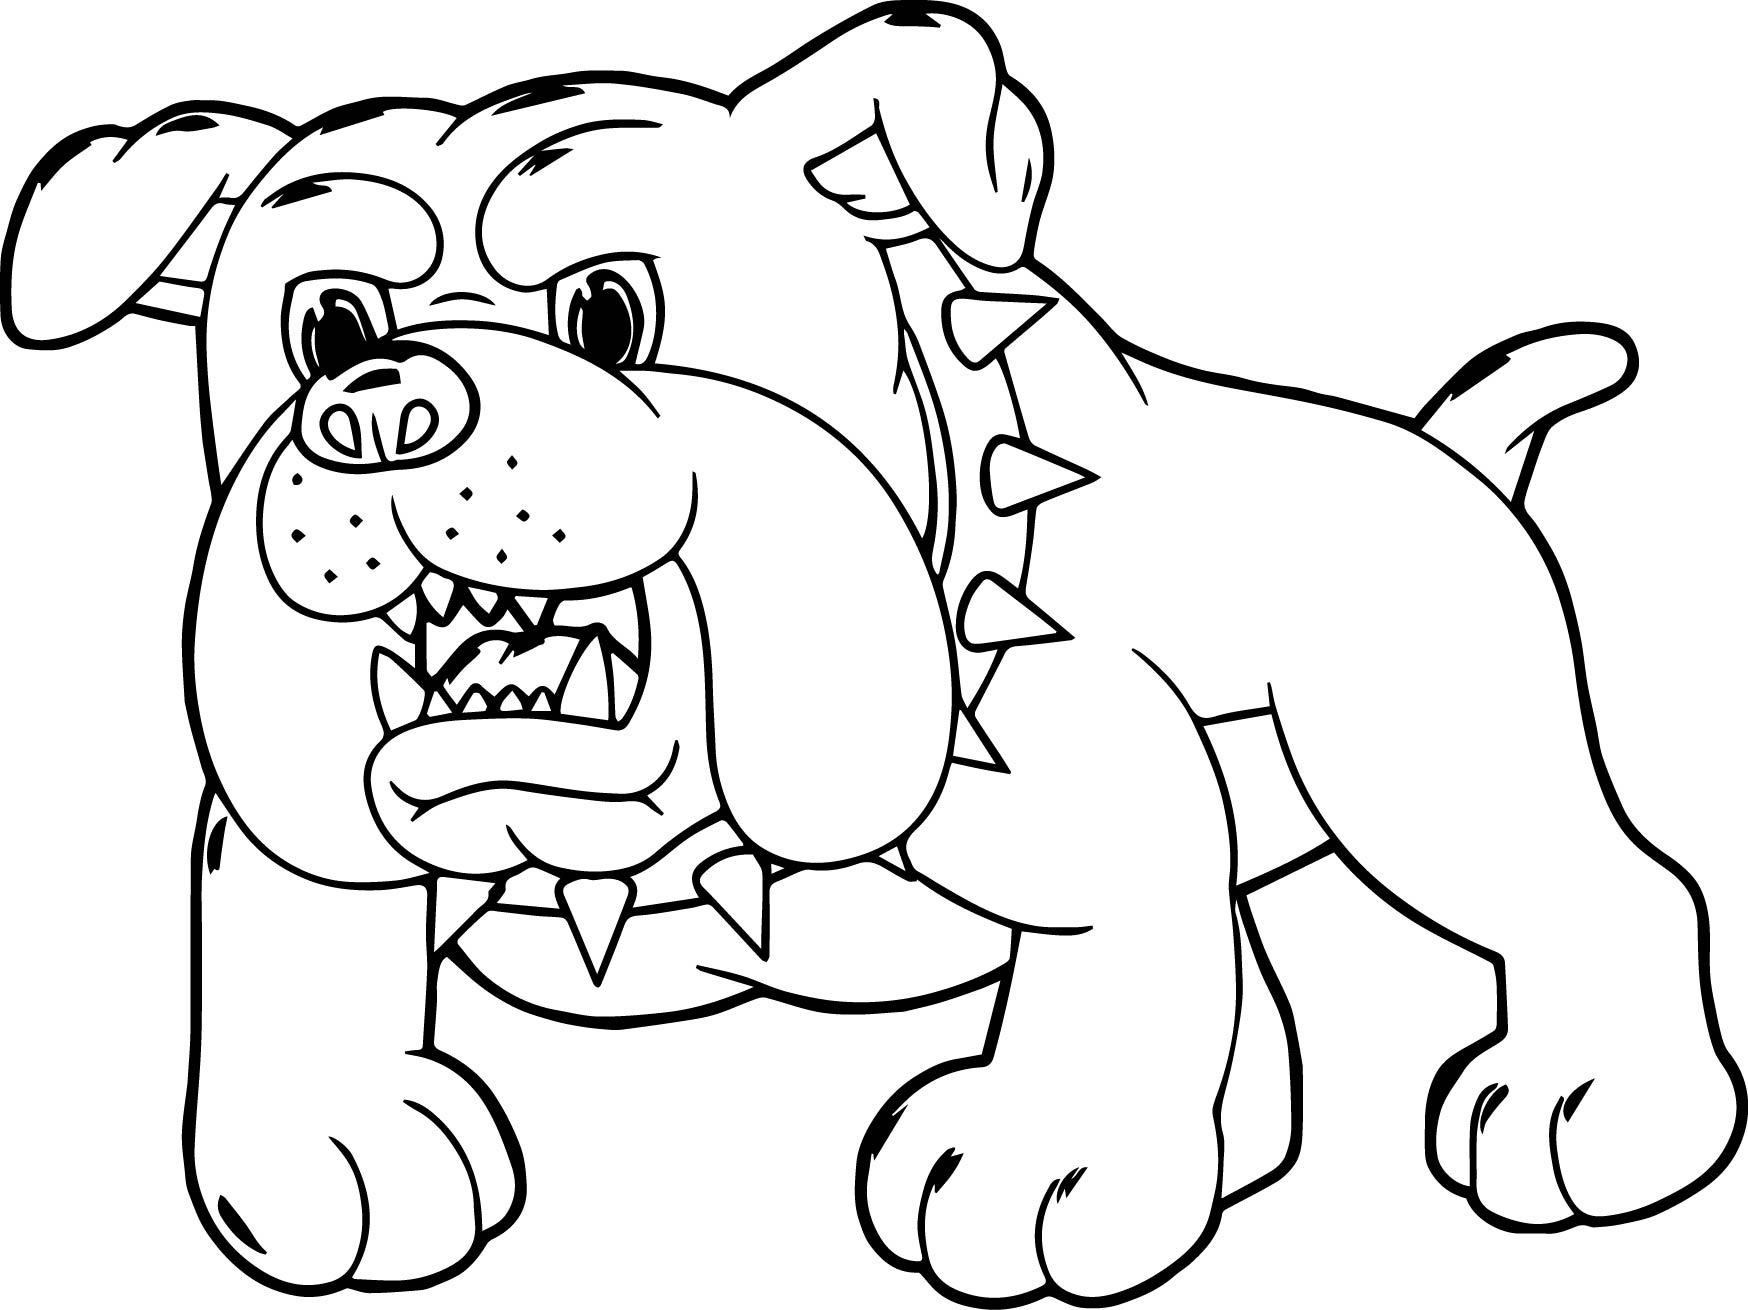 Rottweiler Puppies Coloring Pages From The Thousand Images On The Web About Rottweiler Puppies Coloring Pages We Picks The Top Collections Using Best Resolu